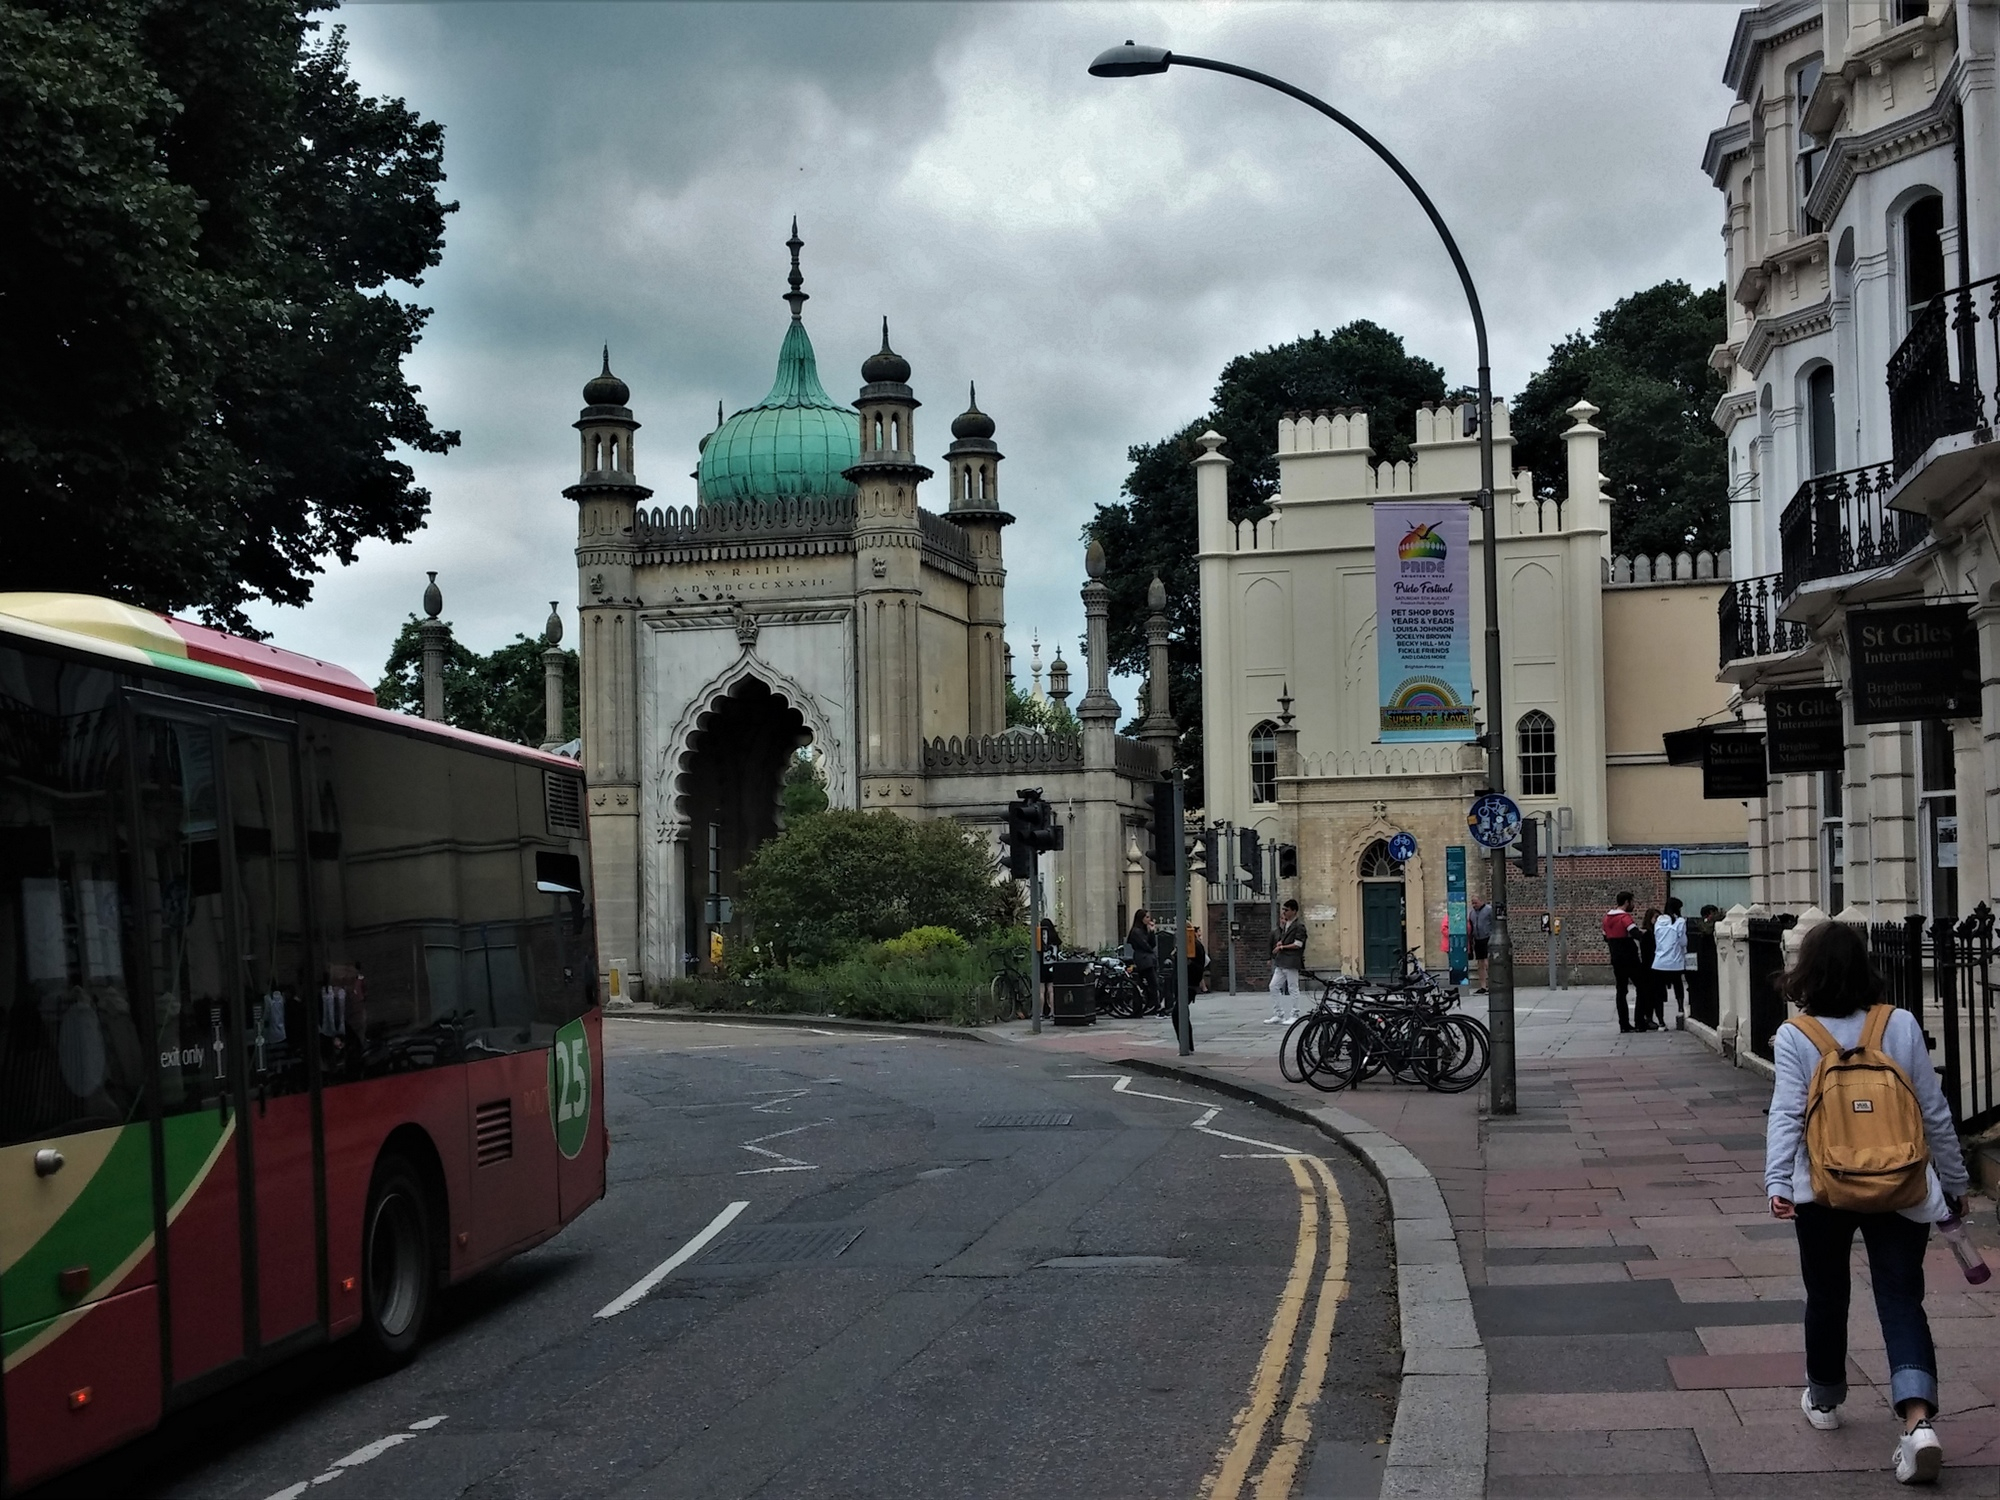 BRIGHTON #2 : The ROYAL PAVILION